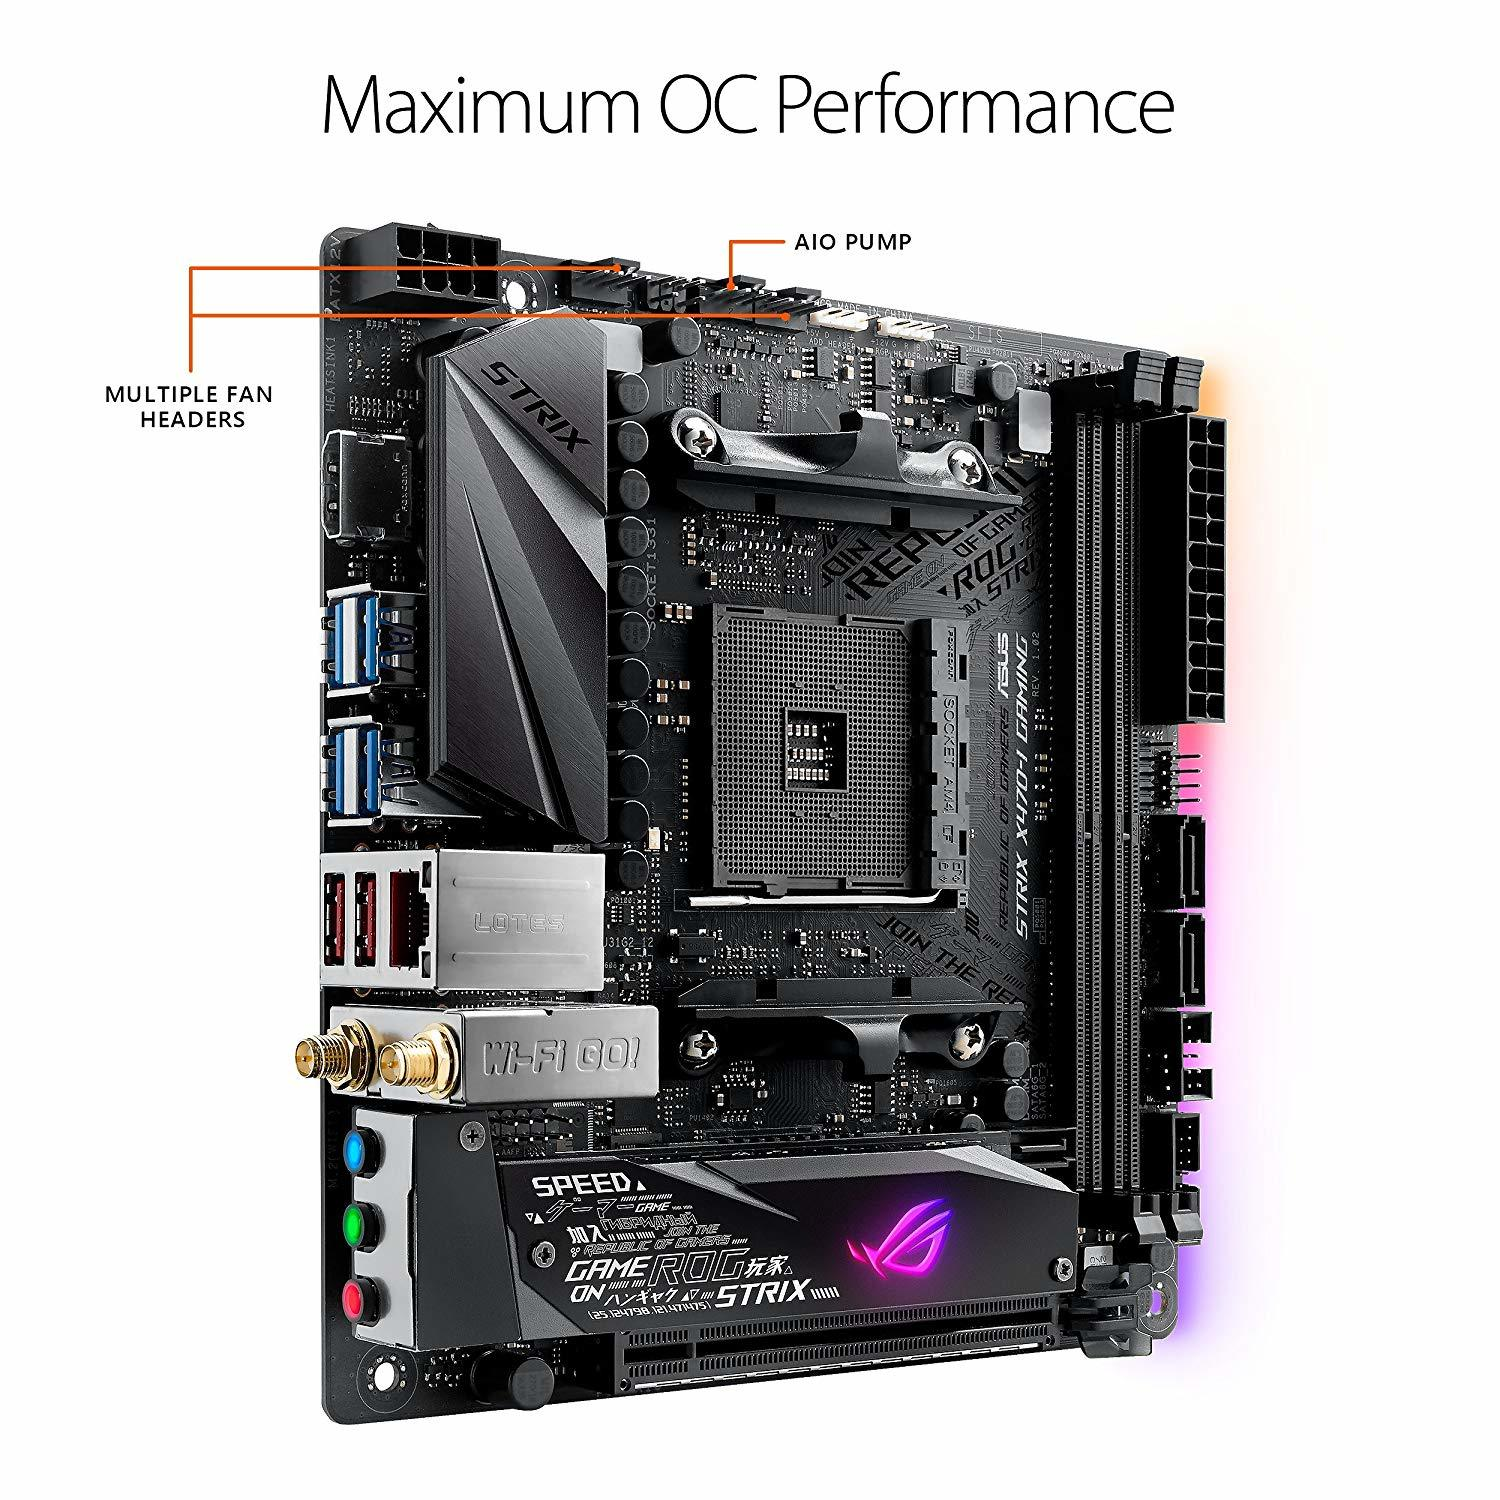 Asus Rog Strix X470-I Gaming AMD Ryzen2 AM4 HDMI M.2 Mini-Itx Motherboard image